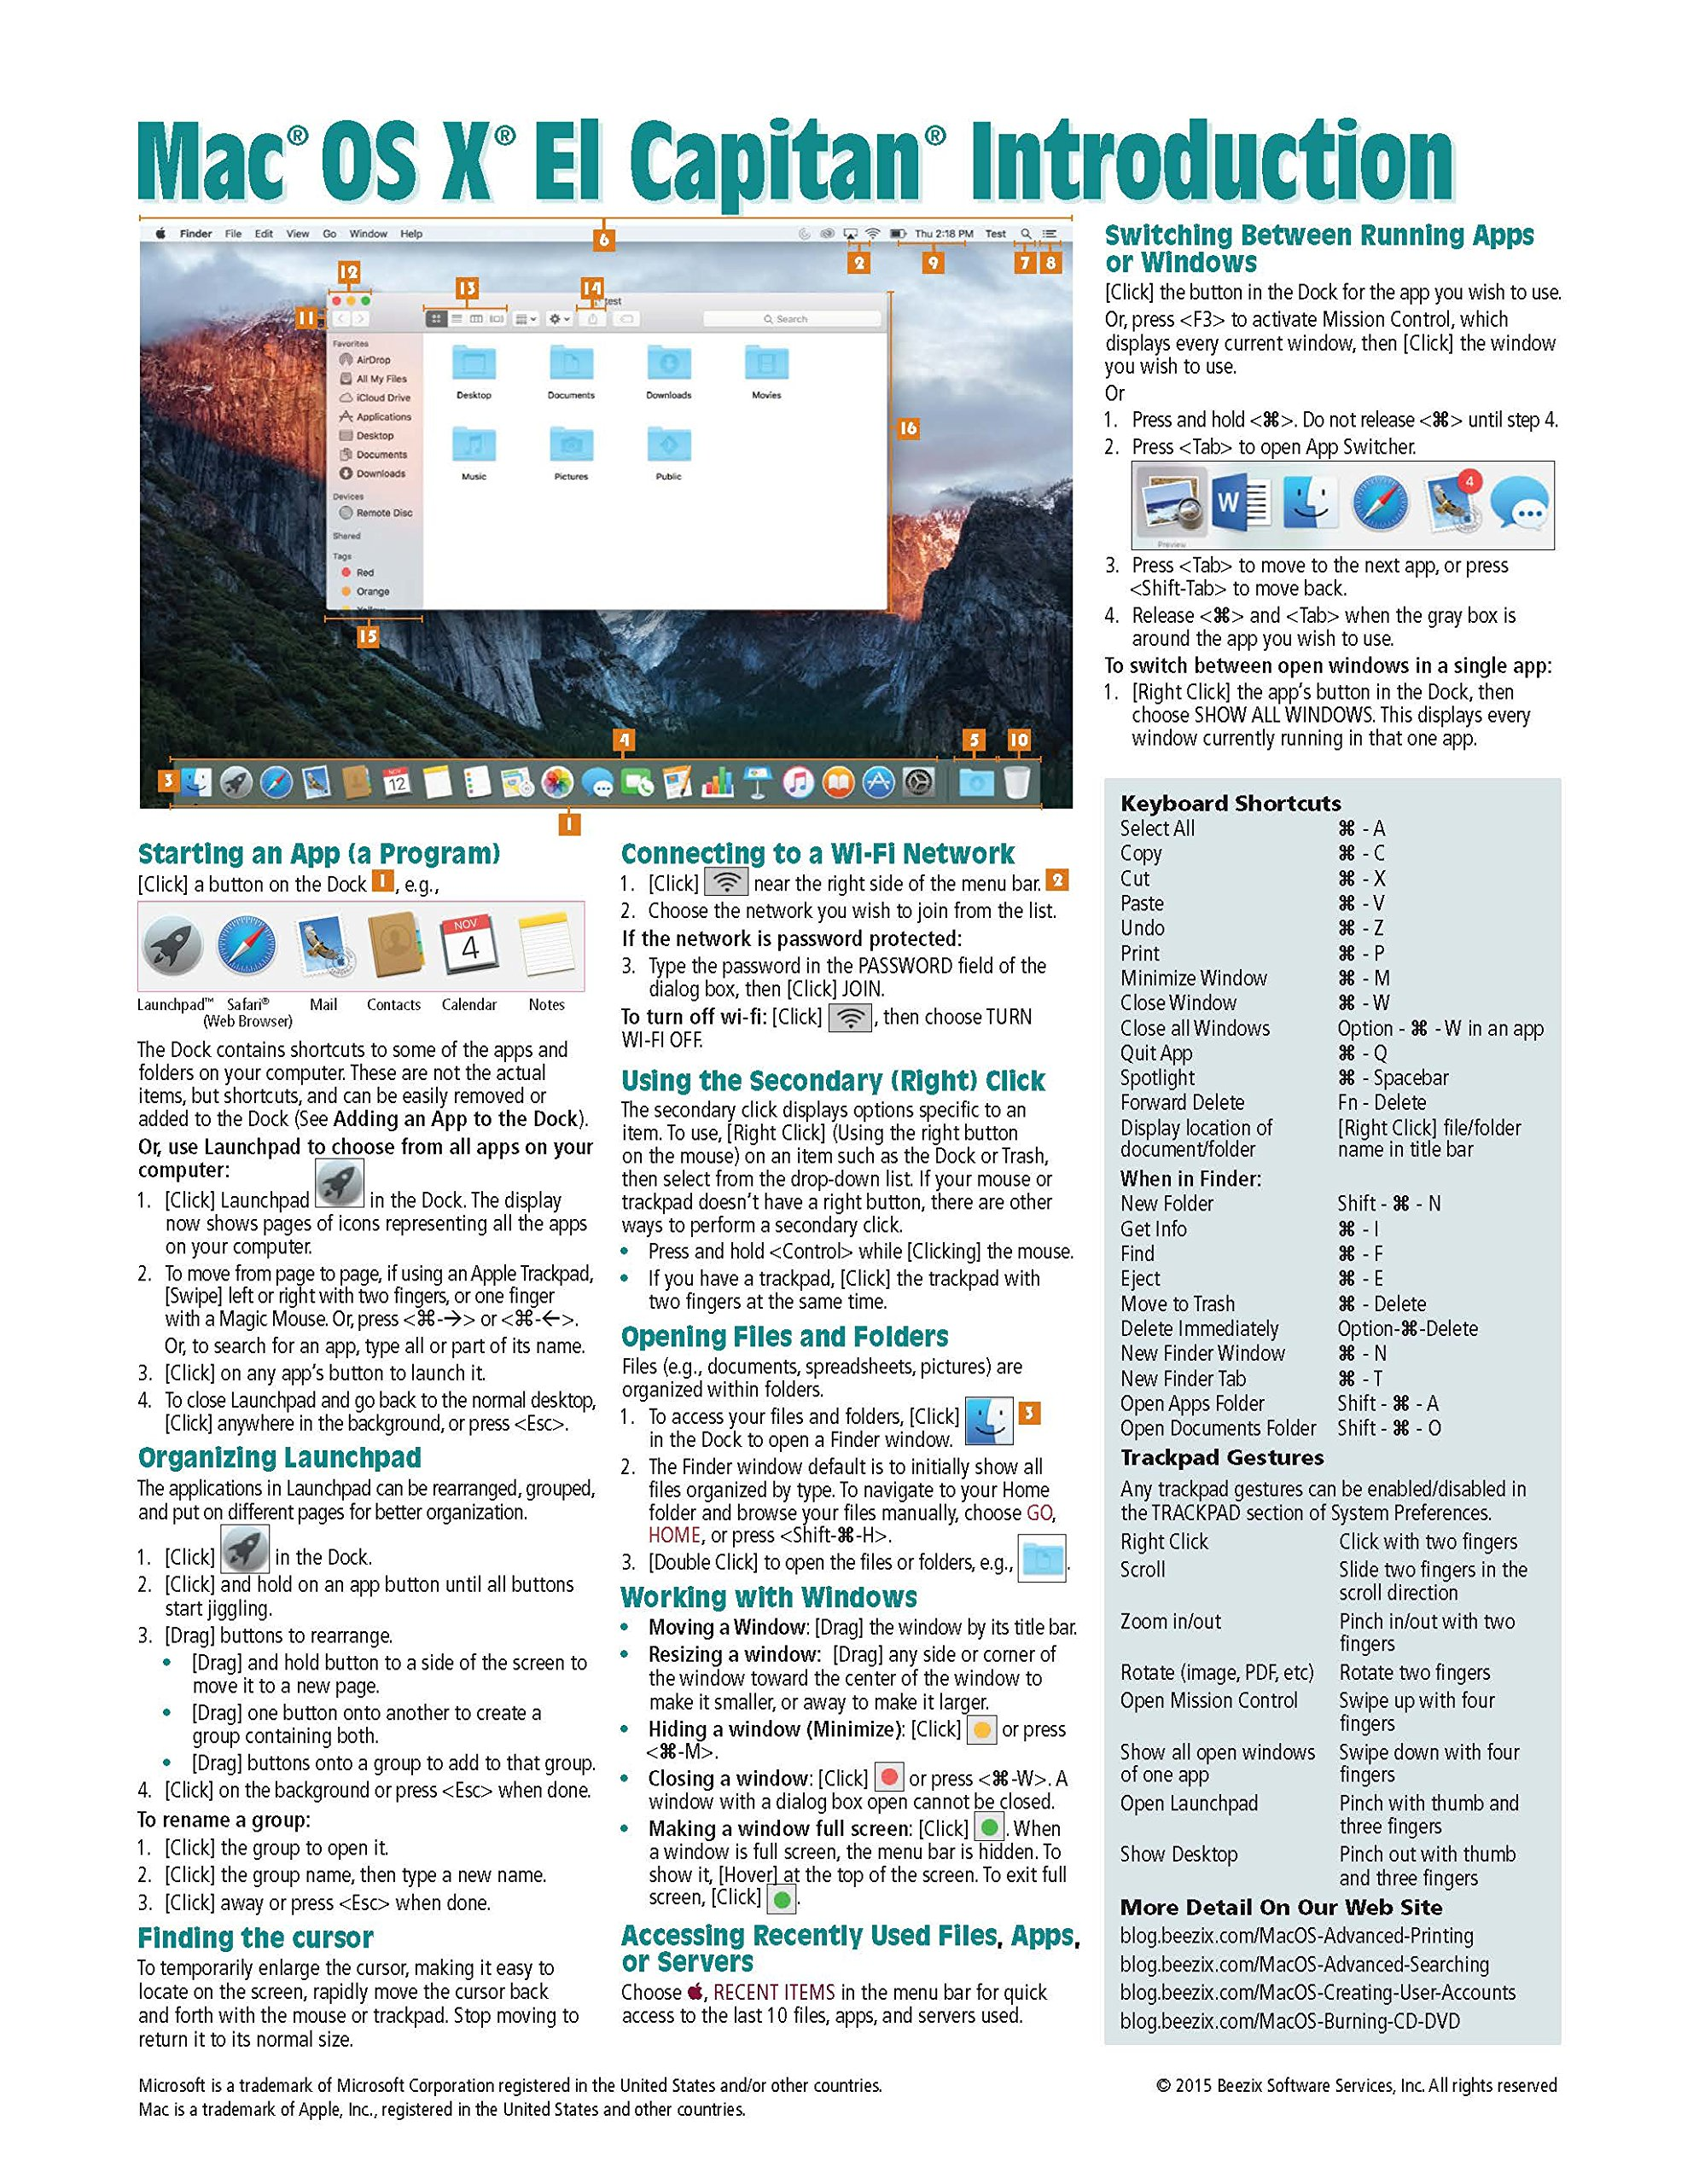 Mac X Manual Auto Electrical Wiring Diagram Satellite C55a Os El Capitan Introduction Quick Reference Guide